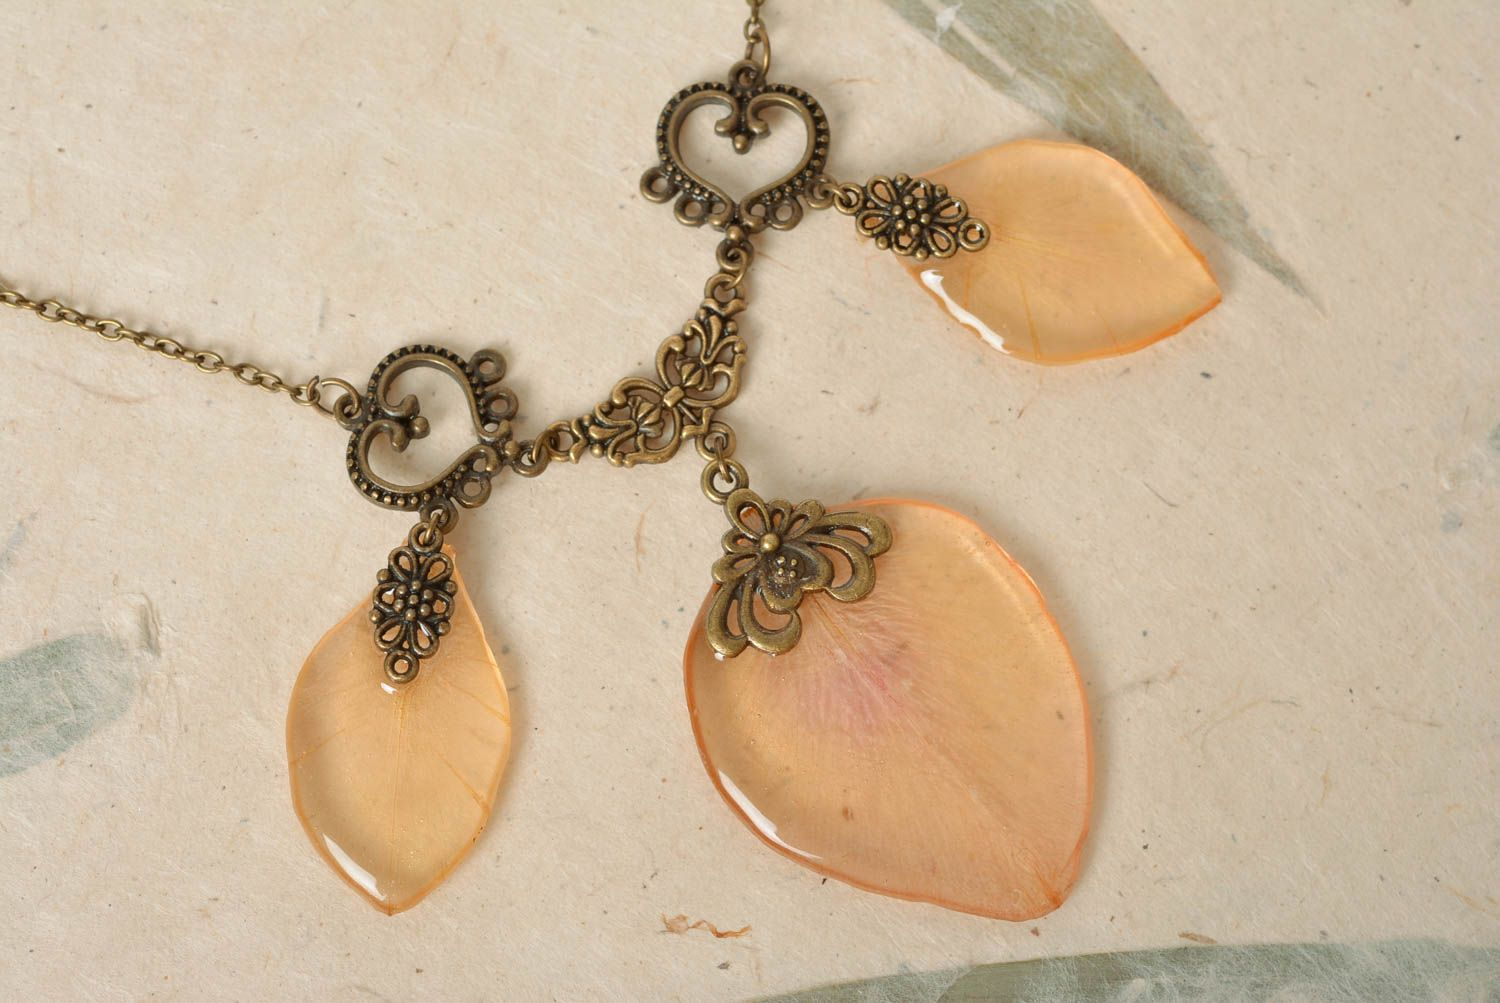 Beautiful handmade peach colored gentle necklace with epoxy coating on chain photo 4